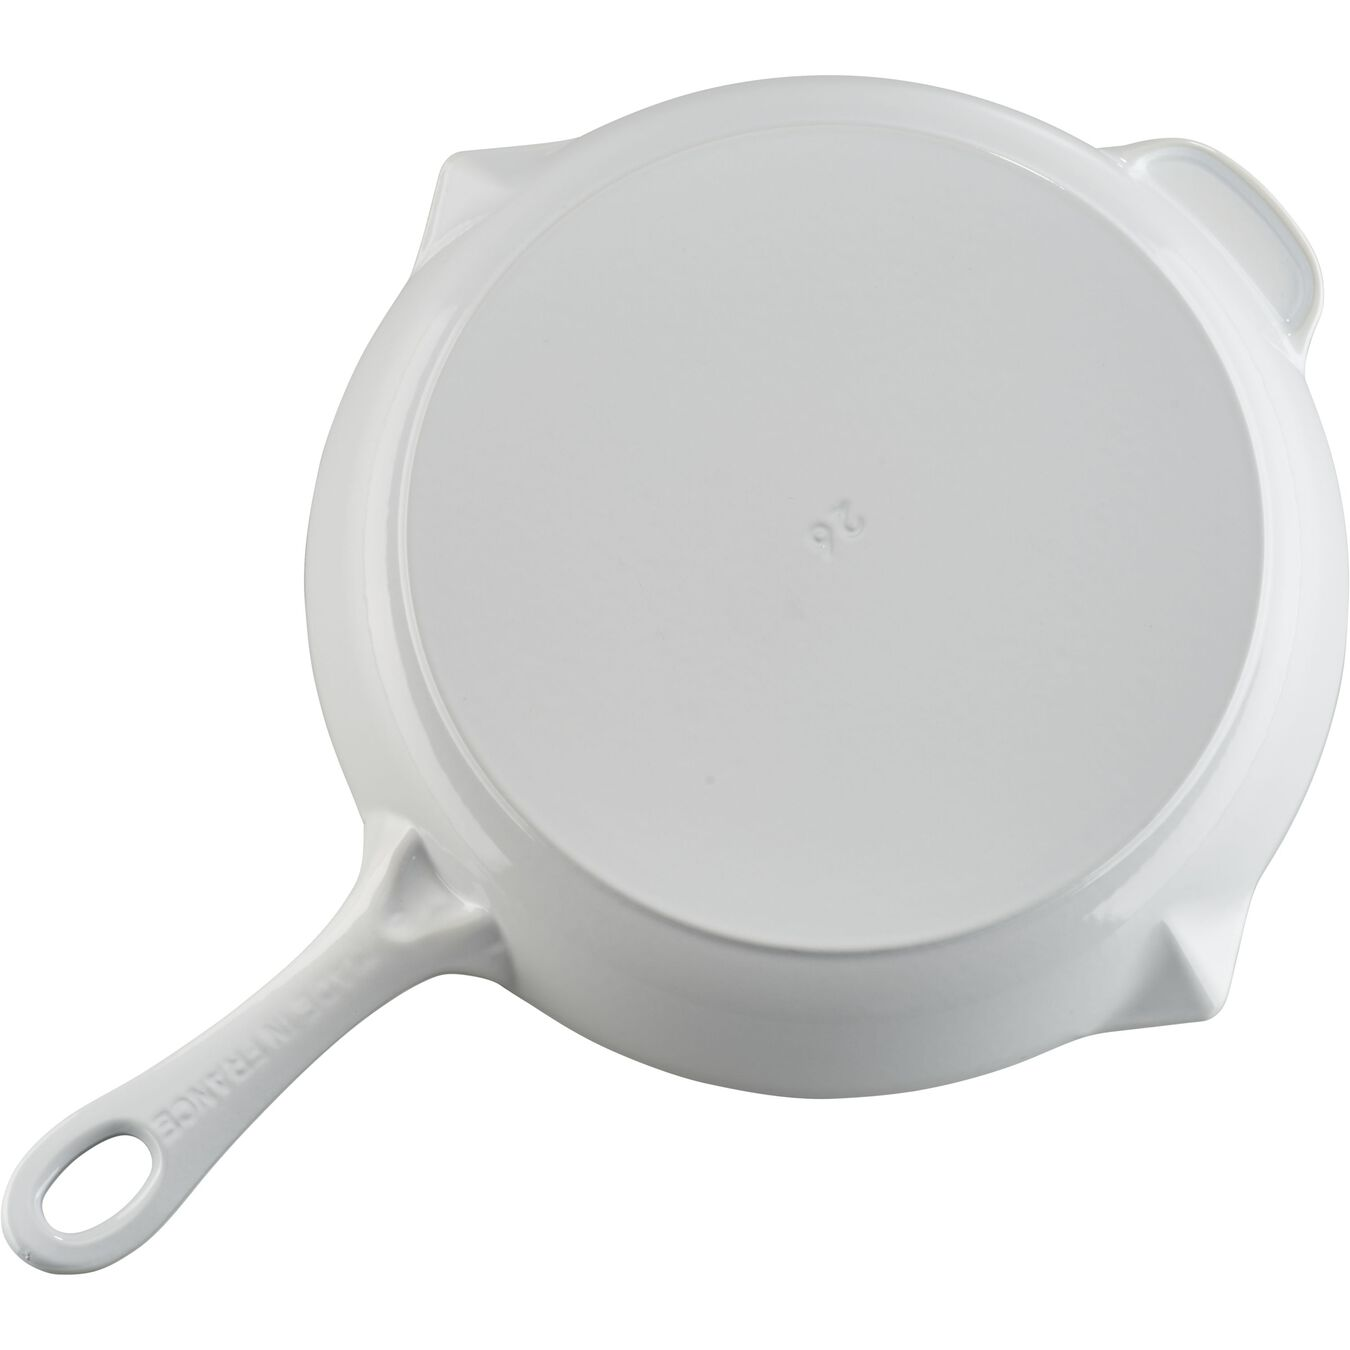 10-inch, Frying pan, white,,large 3